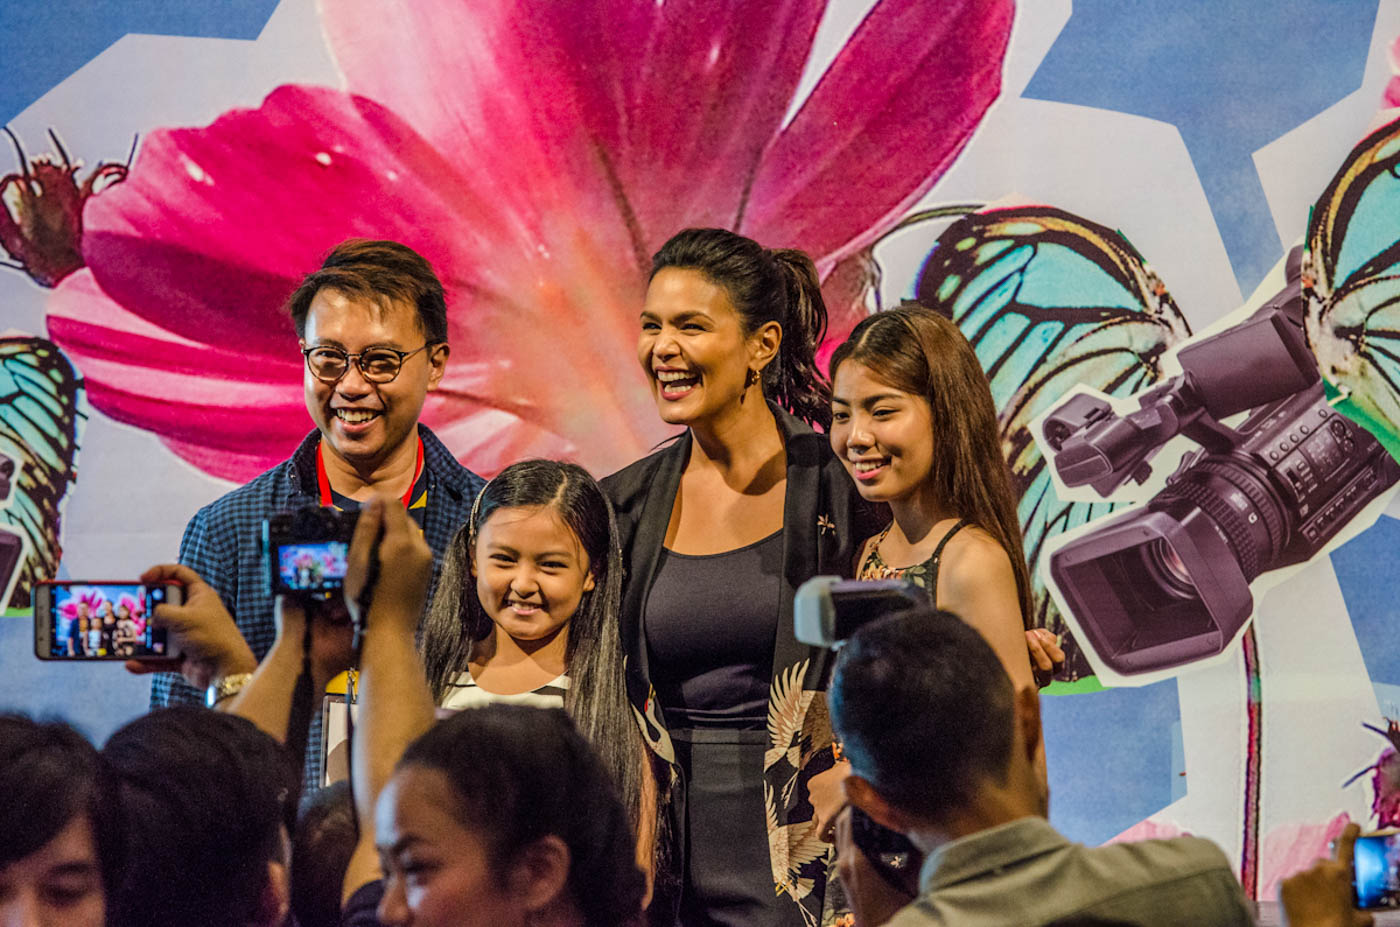 DISTANCE. Iza, director Perci Intalan and child actresses Therese Malvar and Alessandra Malonzo during the Cinemalaya press conference.